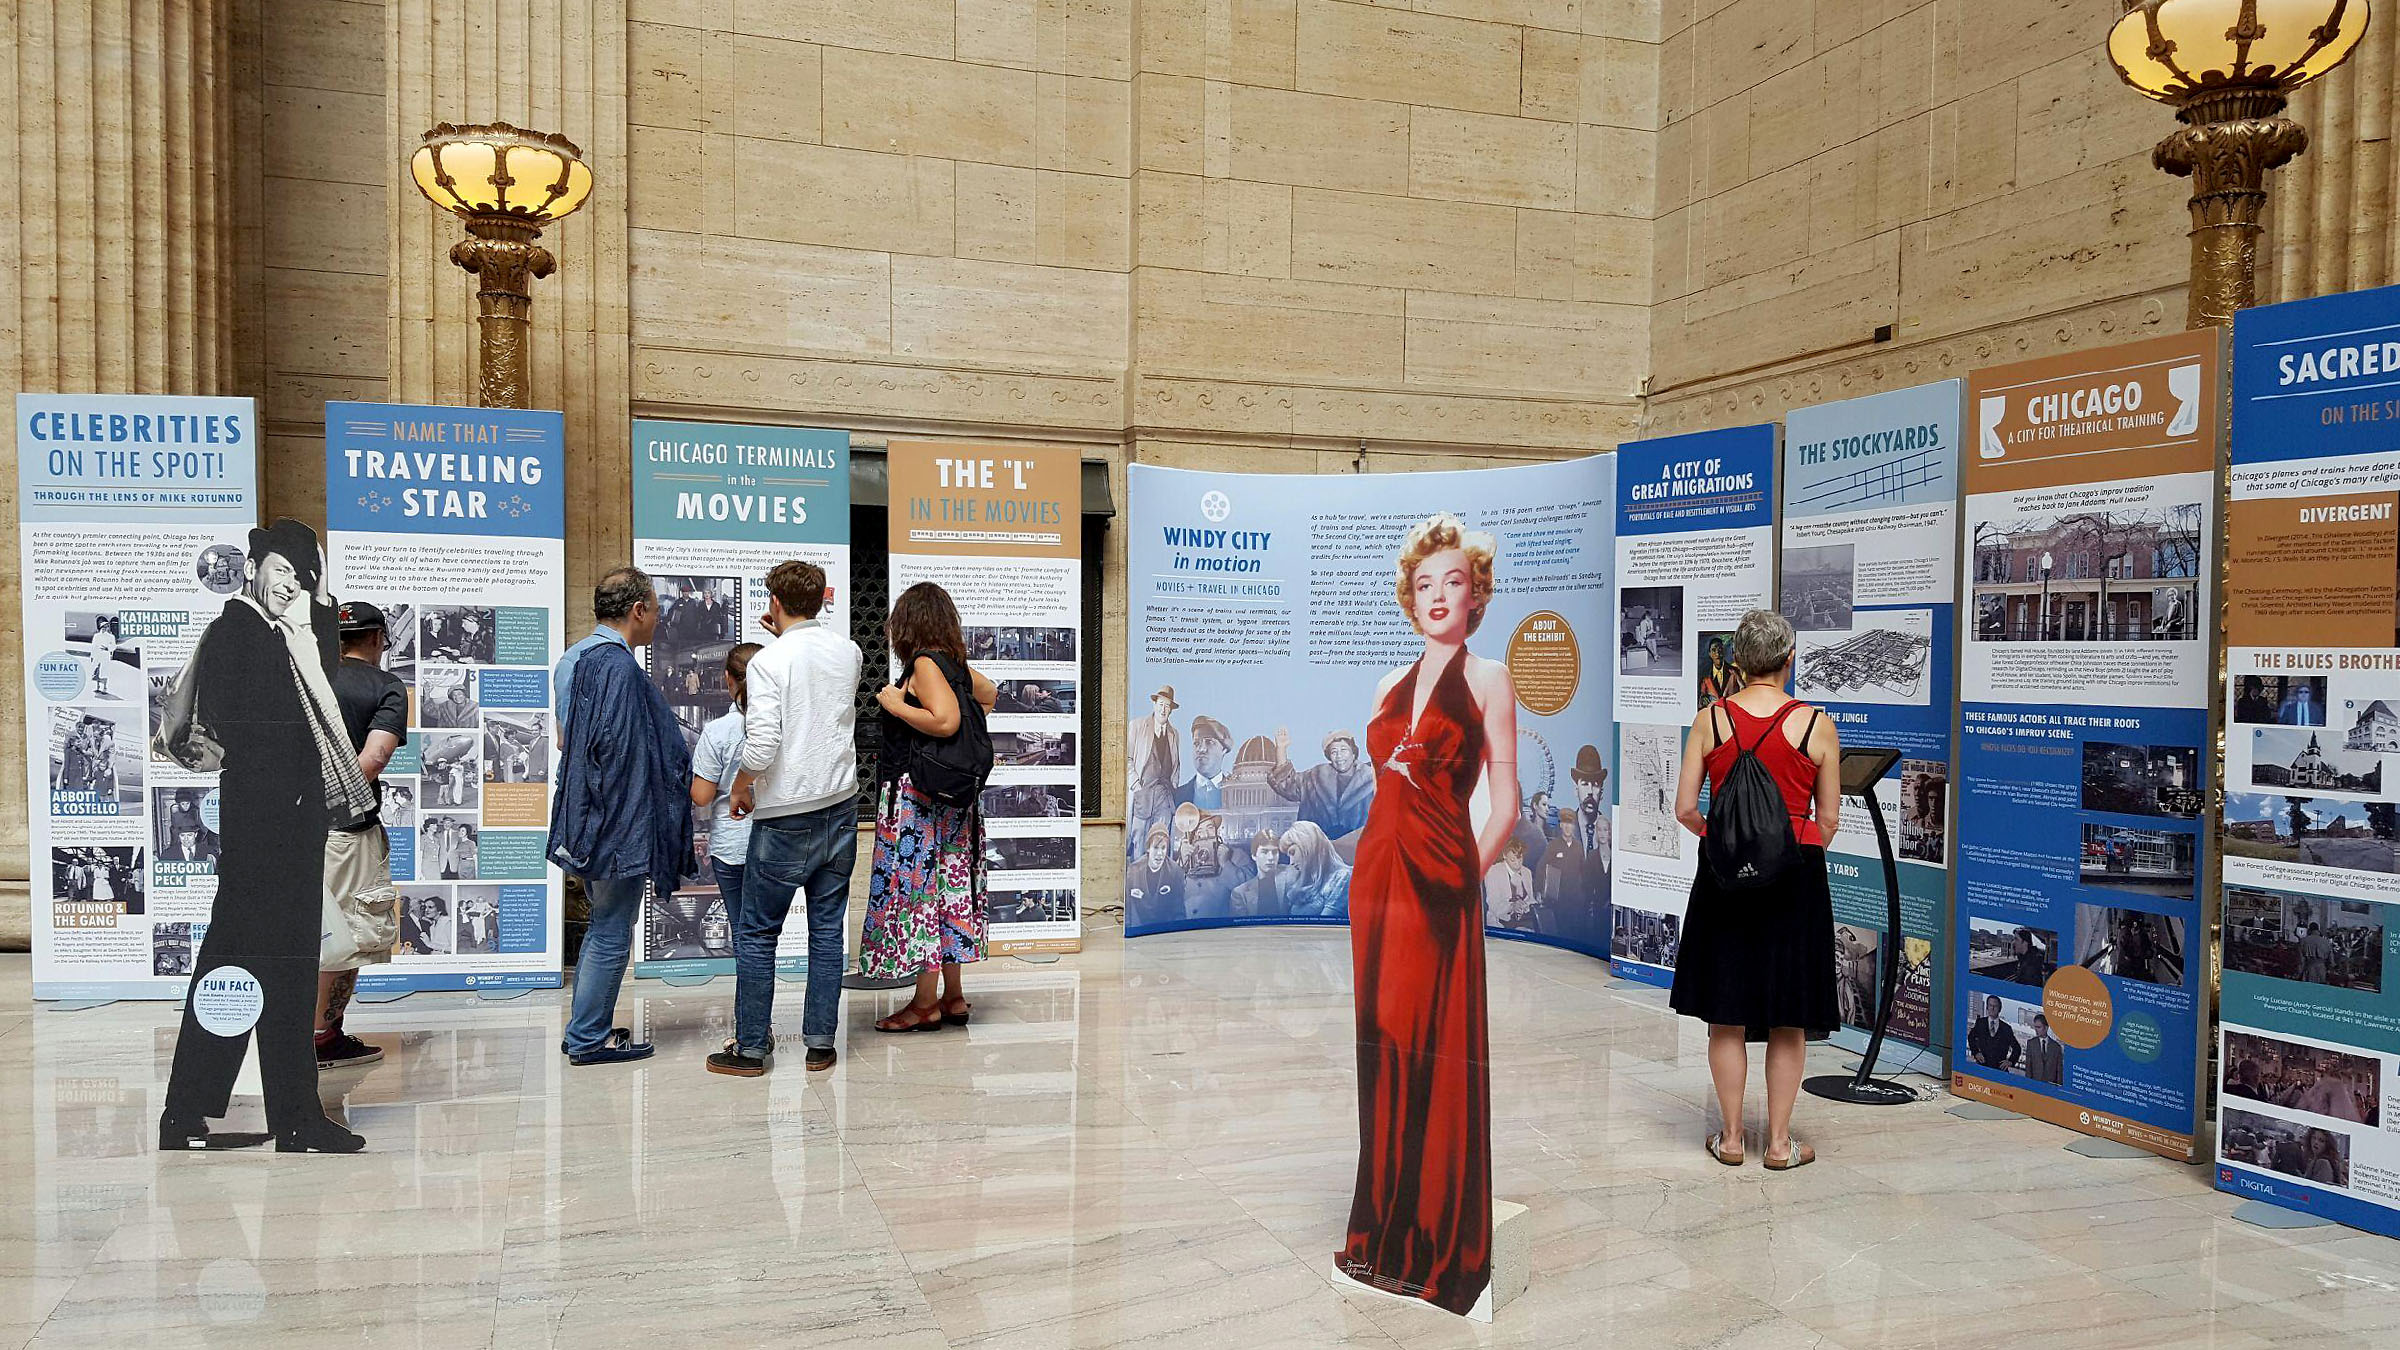 Windy City in Motion exhibit at Union Station in Chicago